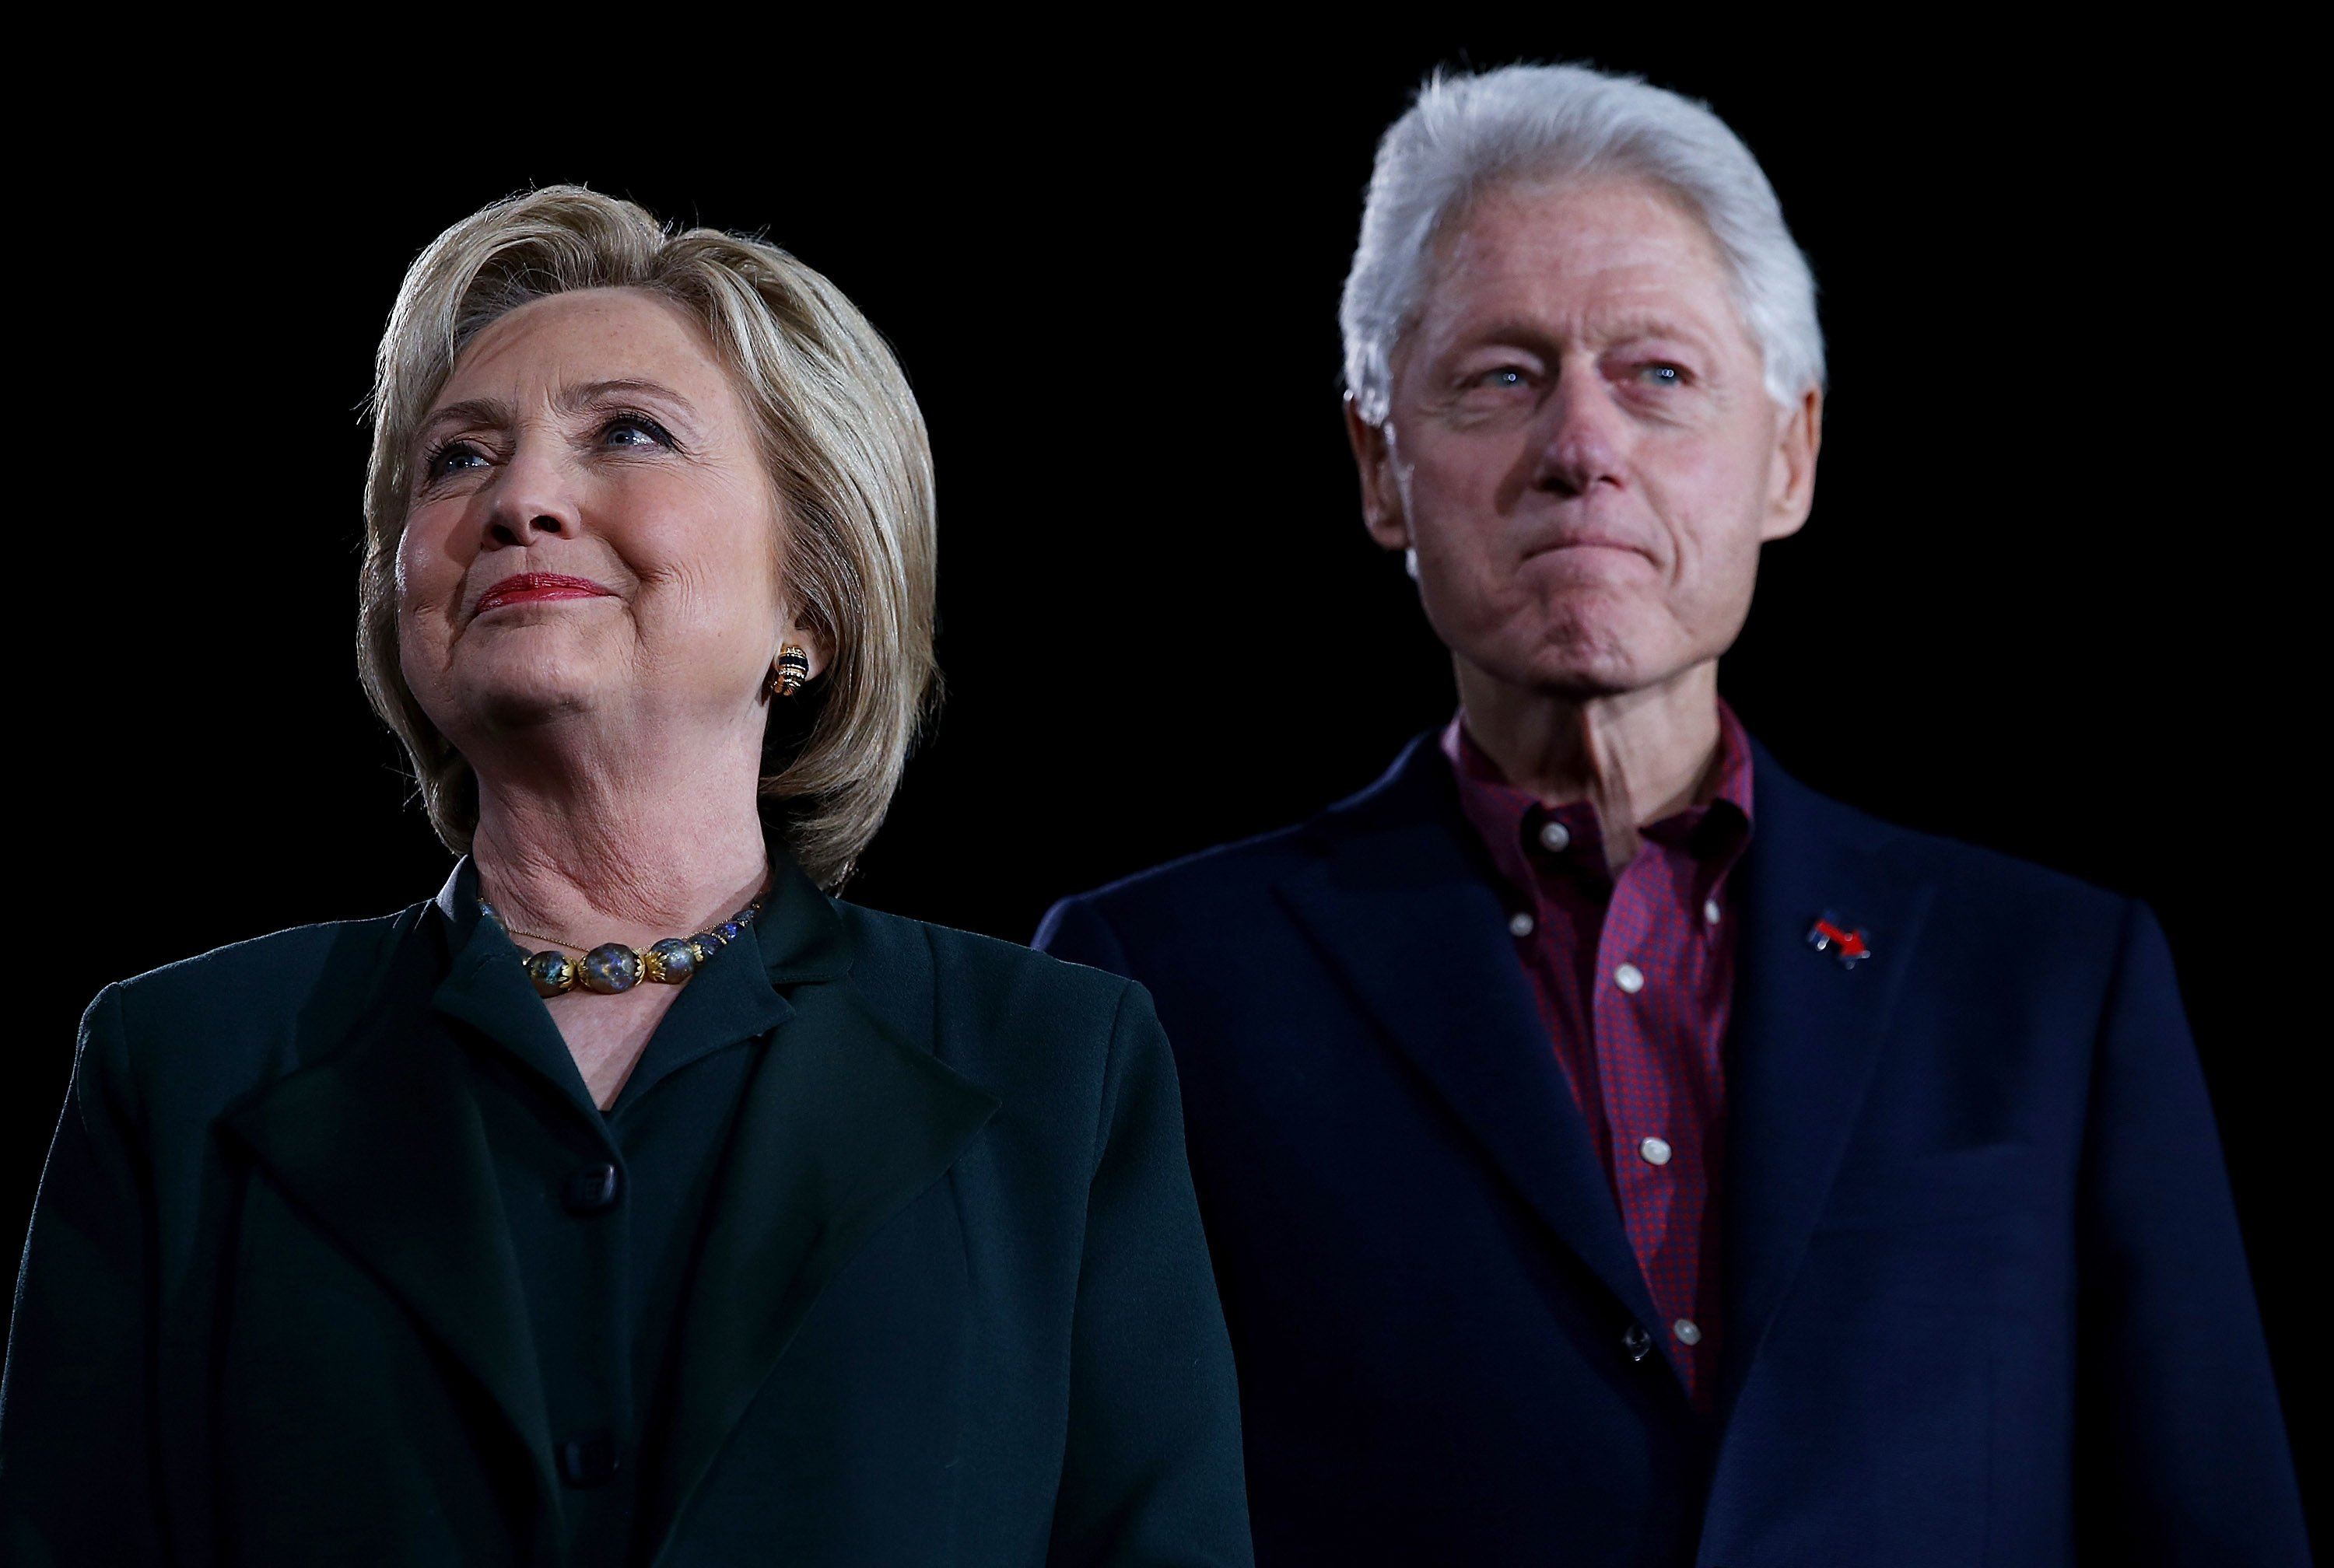 Hillary and Bill Clinton at a 'Get Out The Caucus' at the Clark County Government Center on February 19, 2016 in Las Vegas, Nevada | Photo: Getty Images